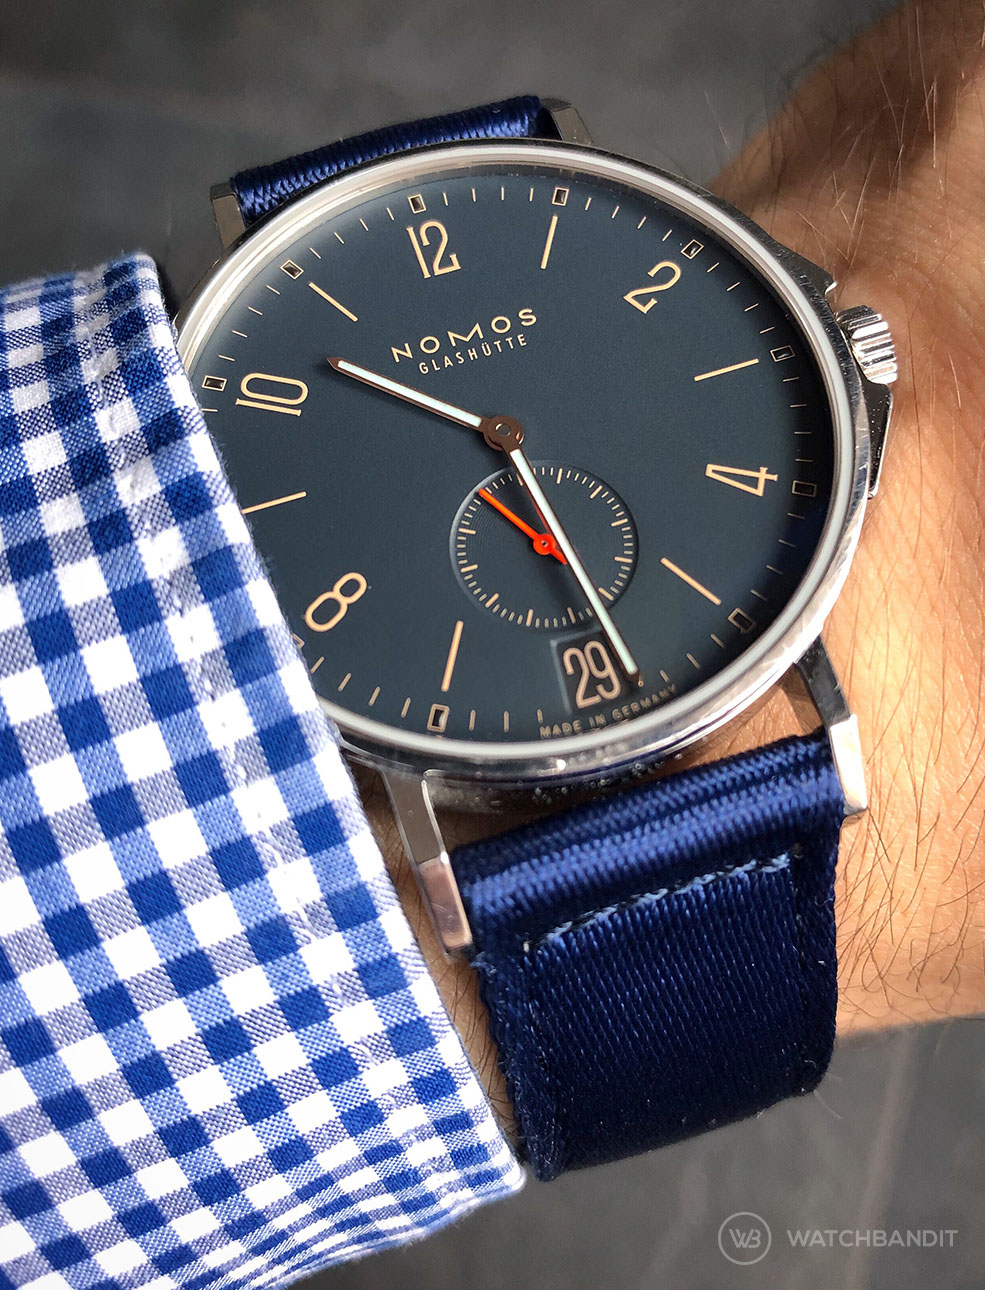 NOMOS Ahoi Atlantic Date on WB Original two piece NATO strap @nomoswatchclub